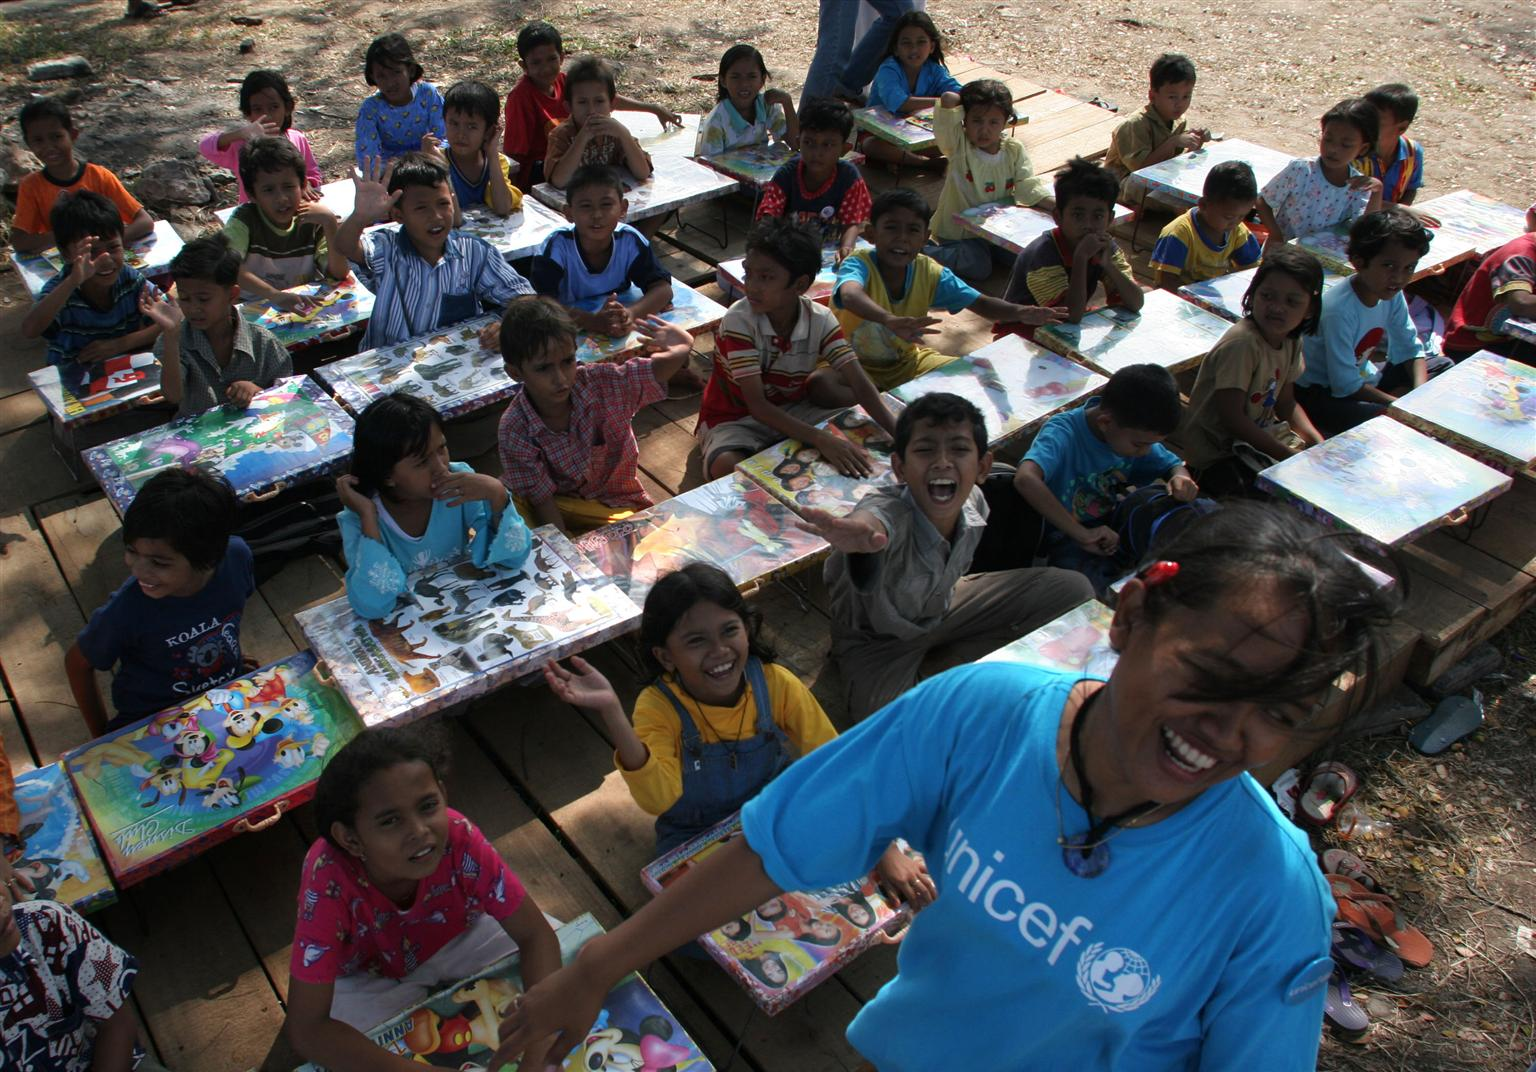 A UNICEF program coordinator runs a class at a displacement camp in Banda Aceh, Indonesia, helping children work through trauma through activities. ©UNICEF/NYHQ2005-0323/ESTEY